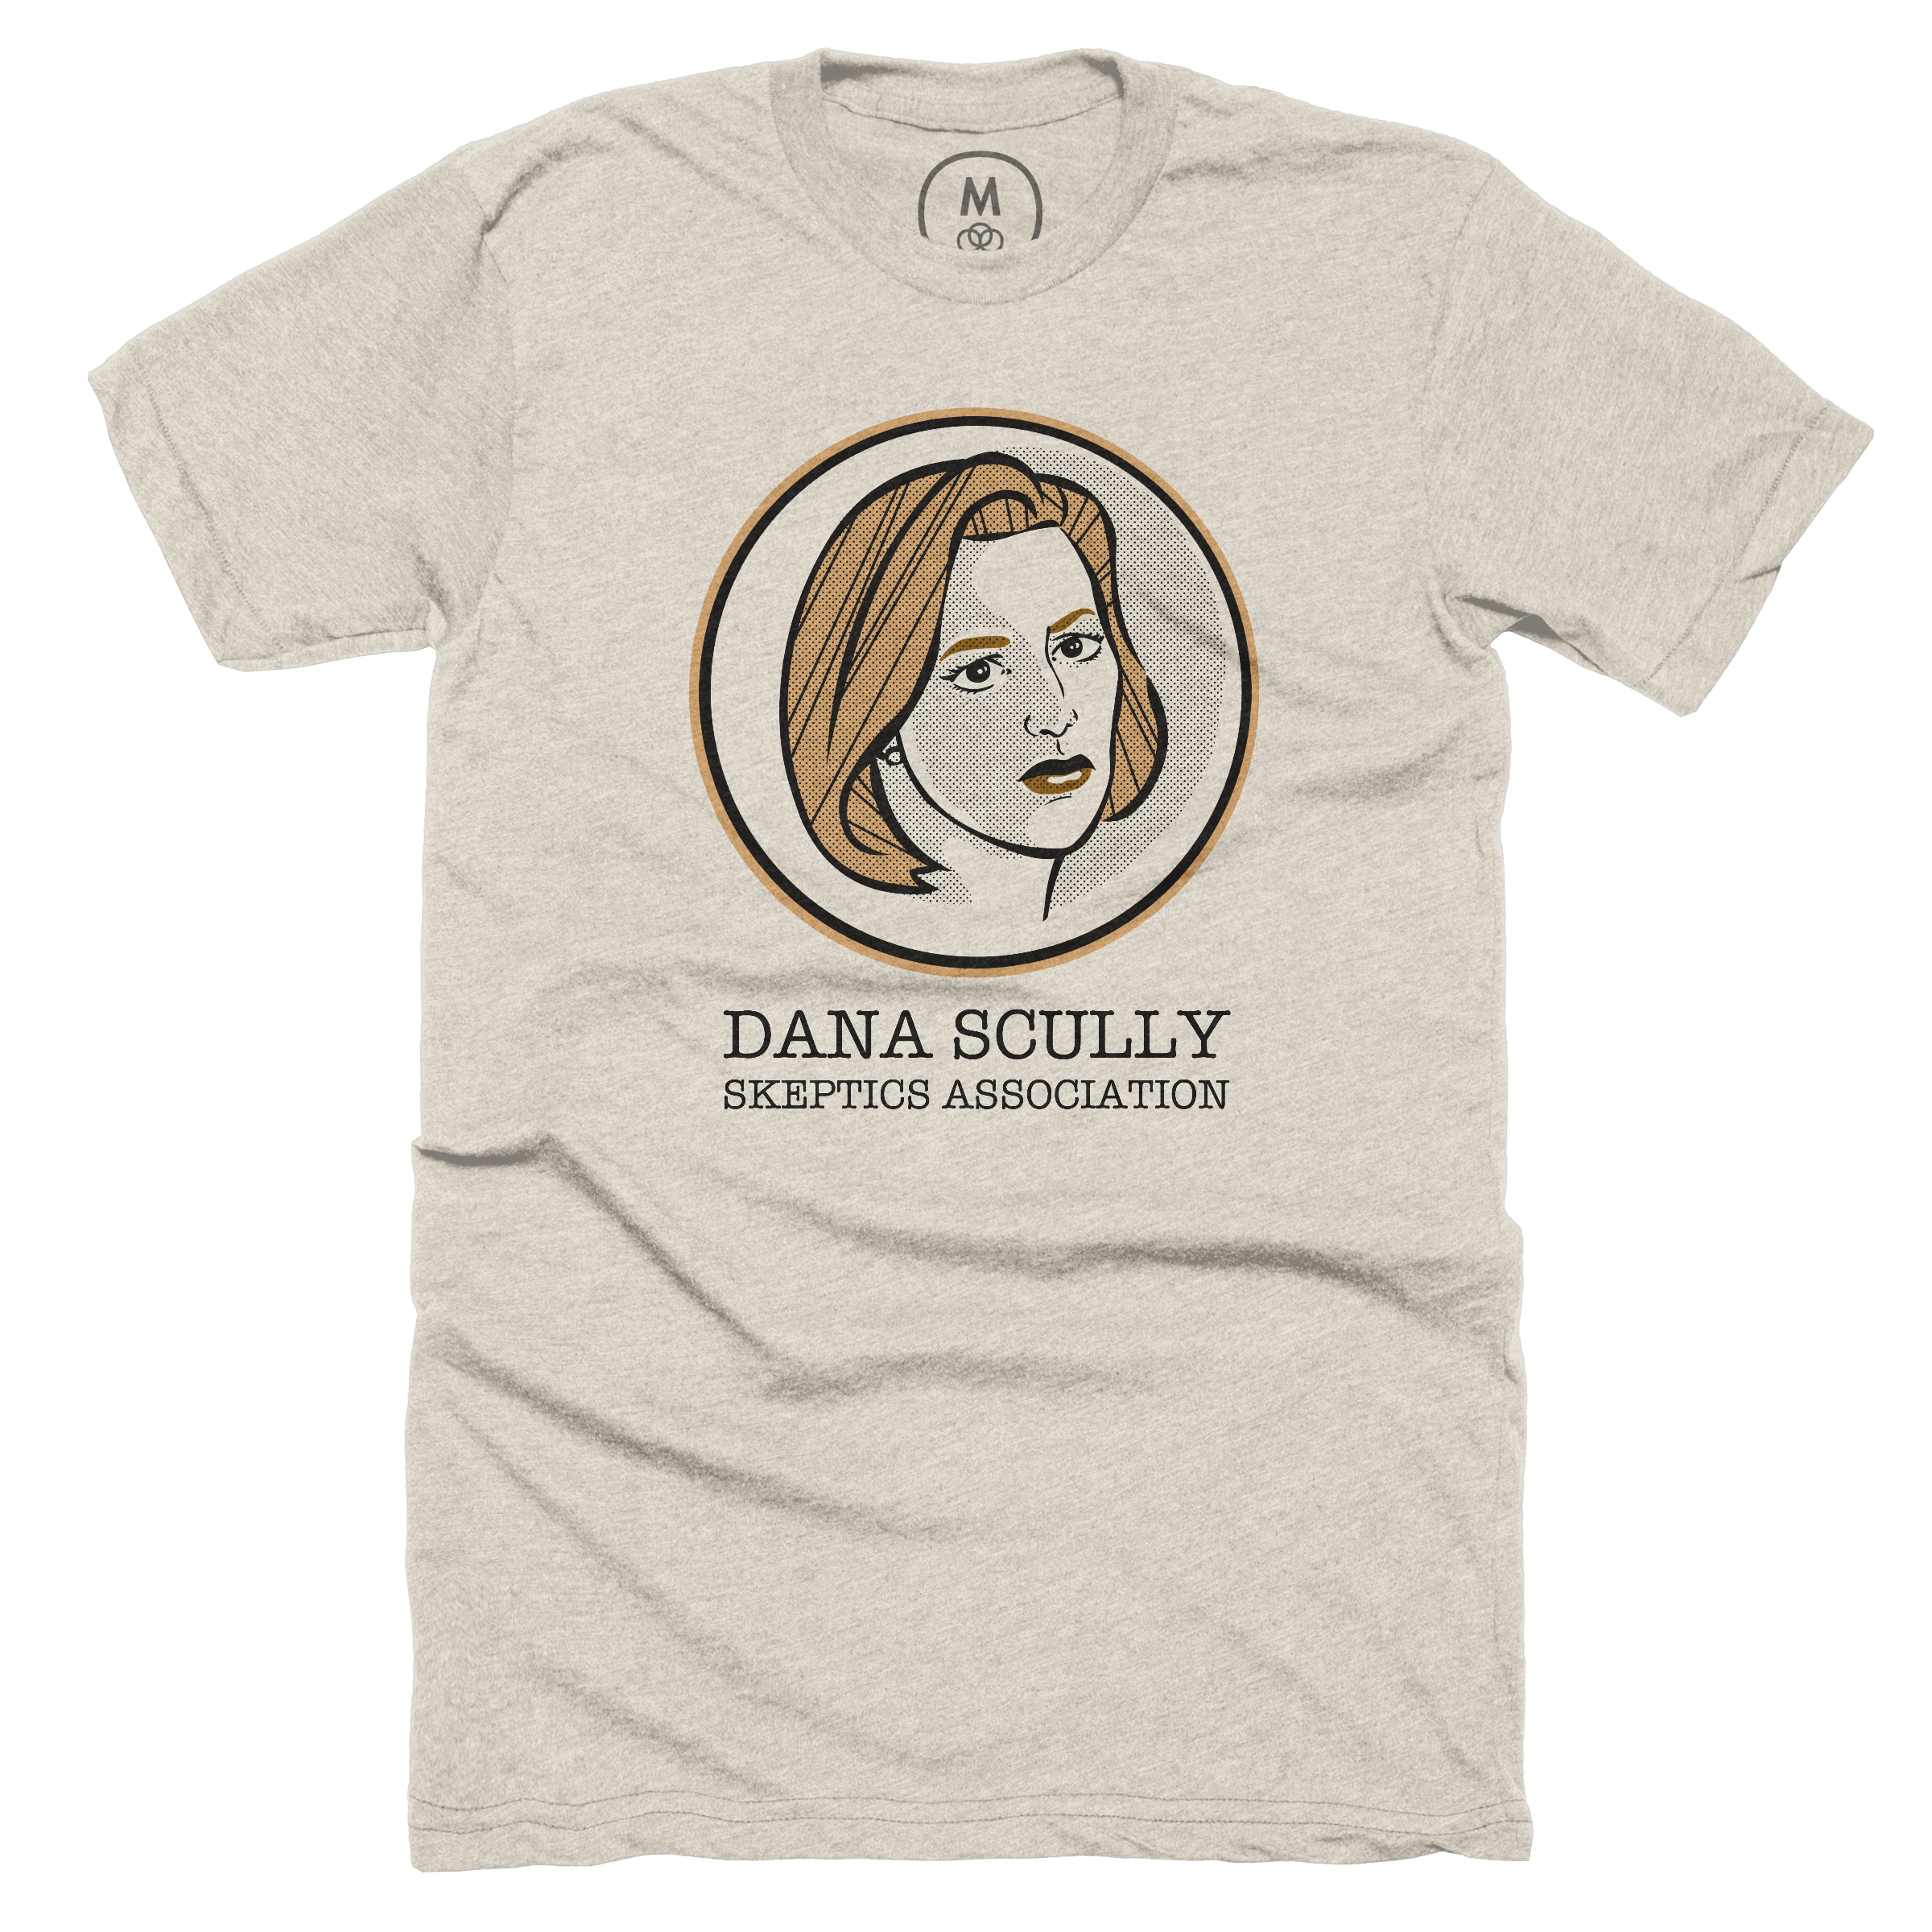 Dana Scully Skeptics Association